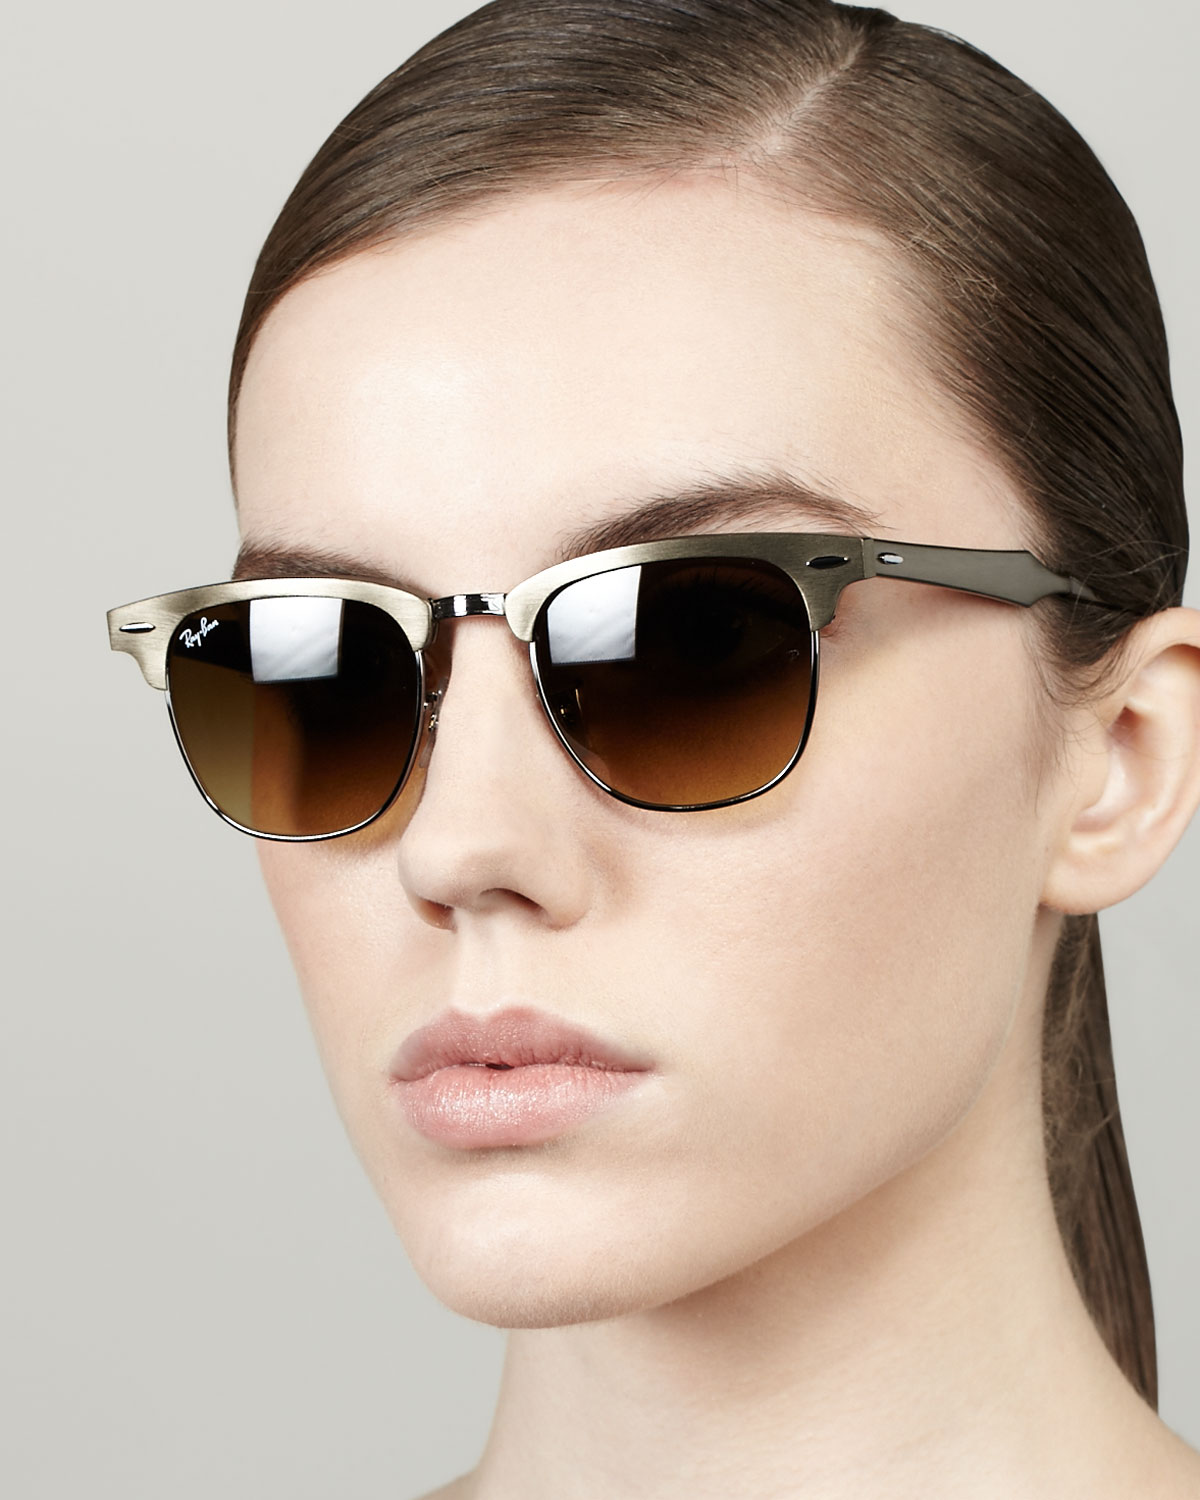 Ray ban round sunglasses celebrity